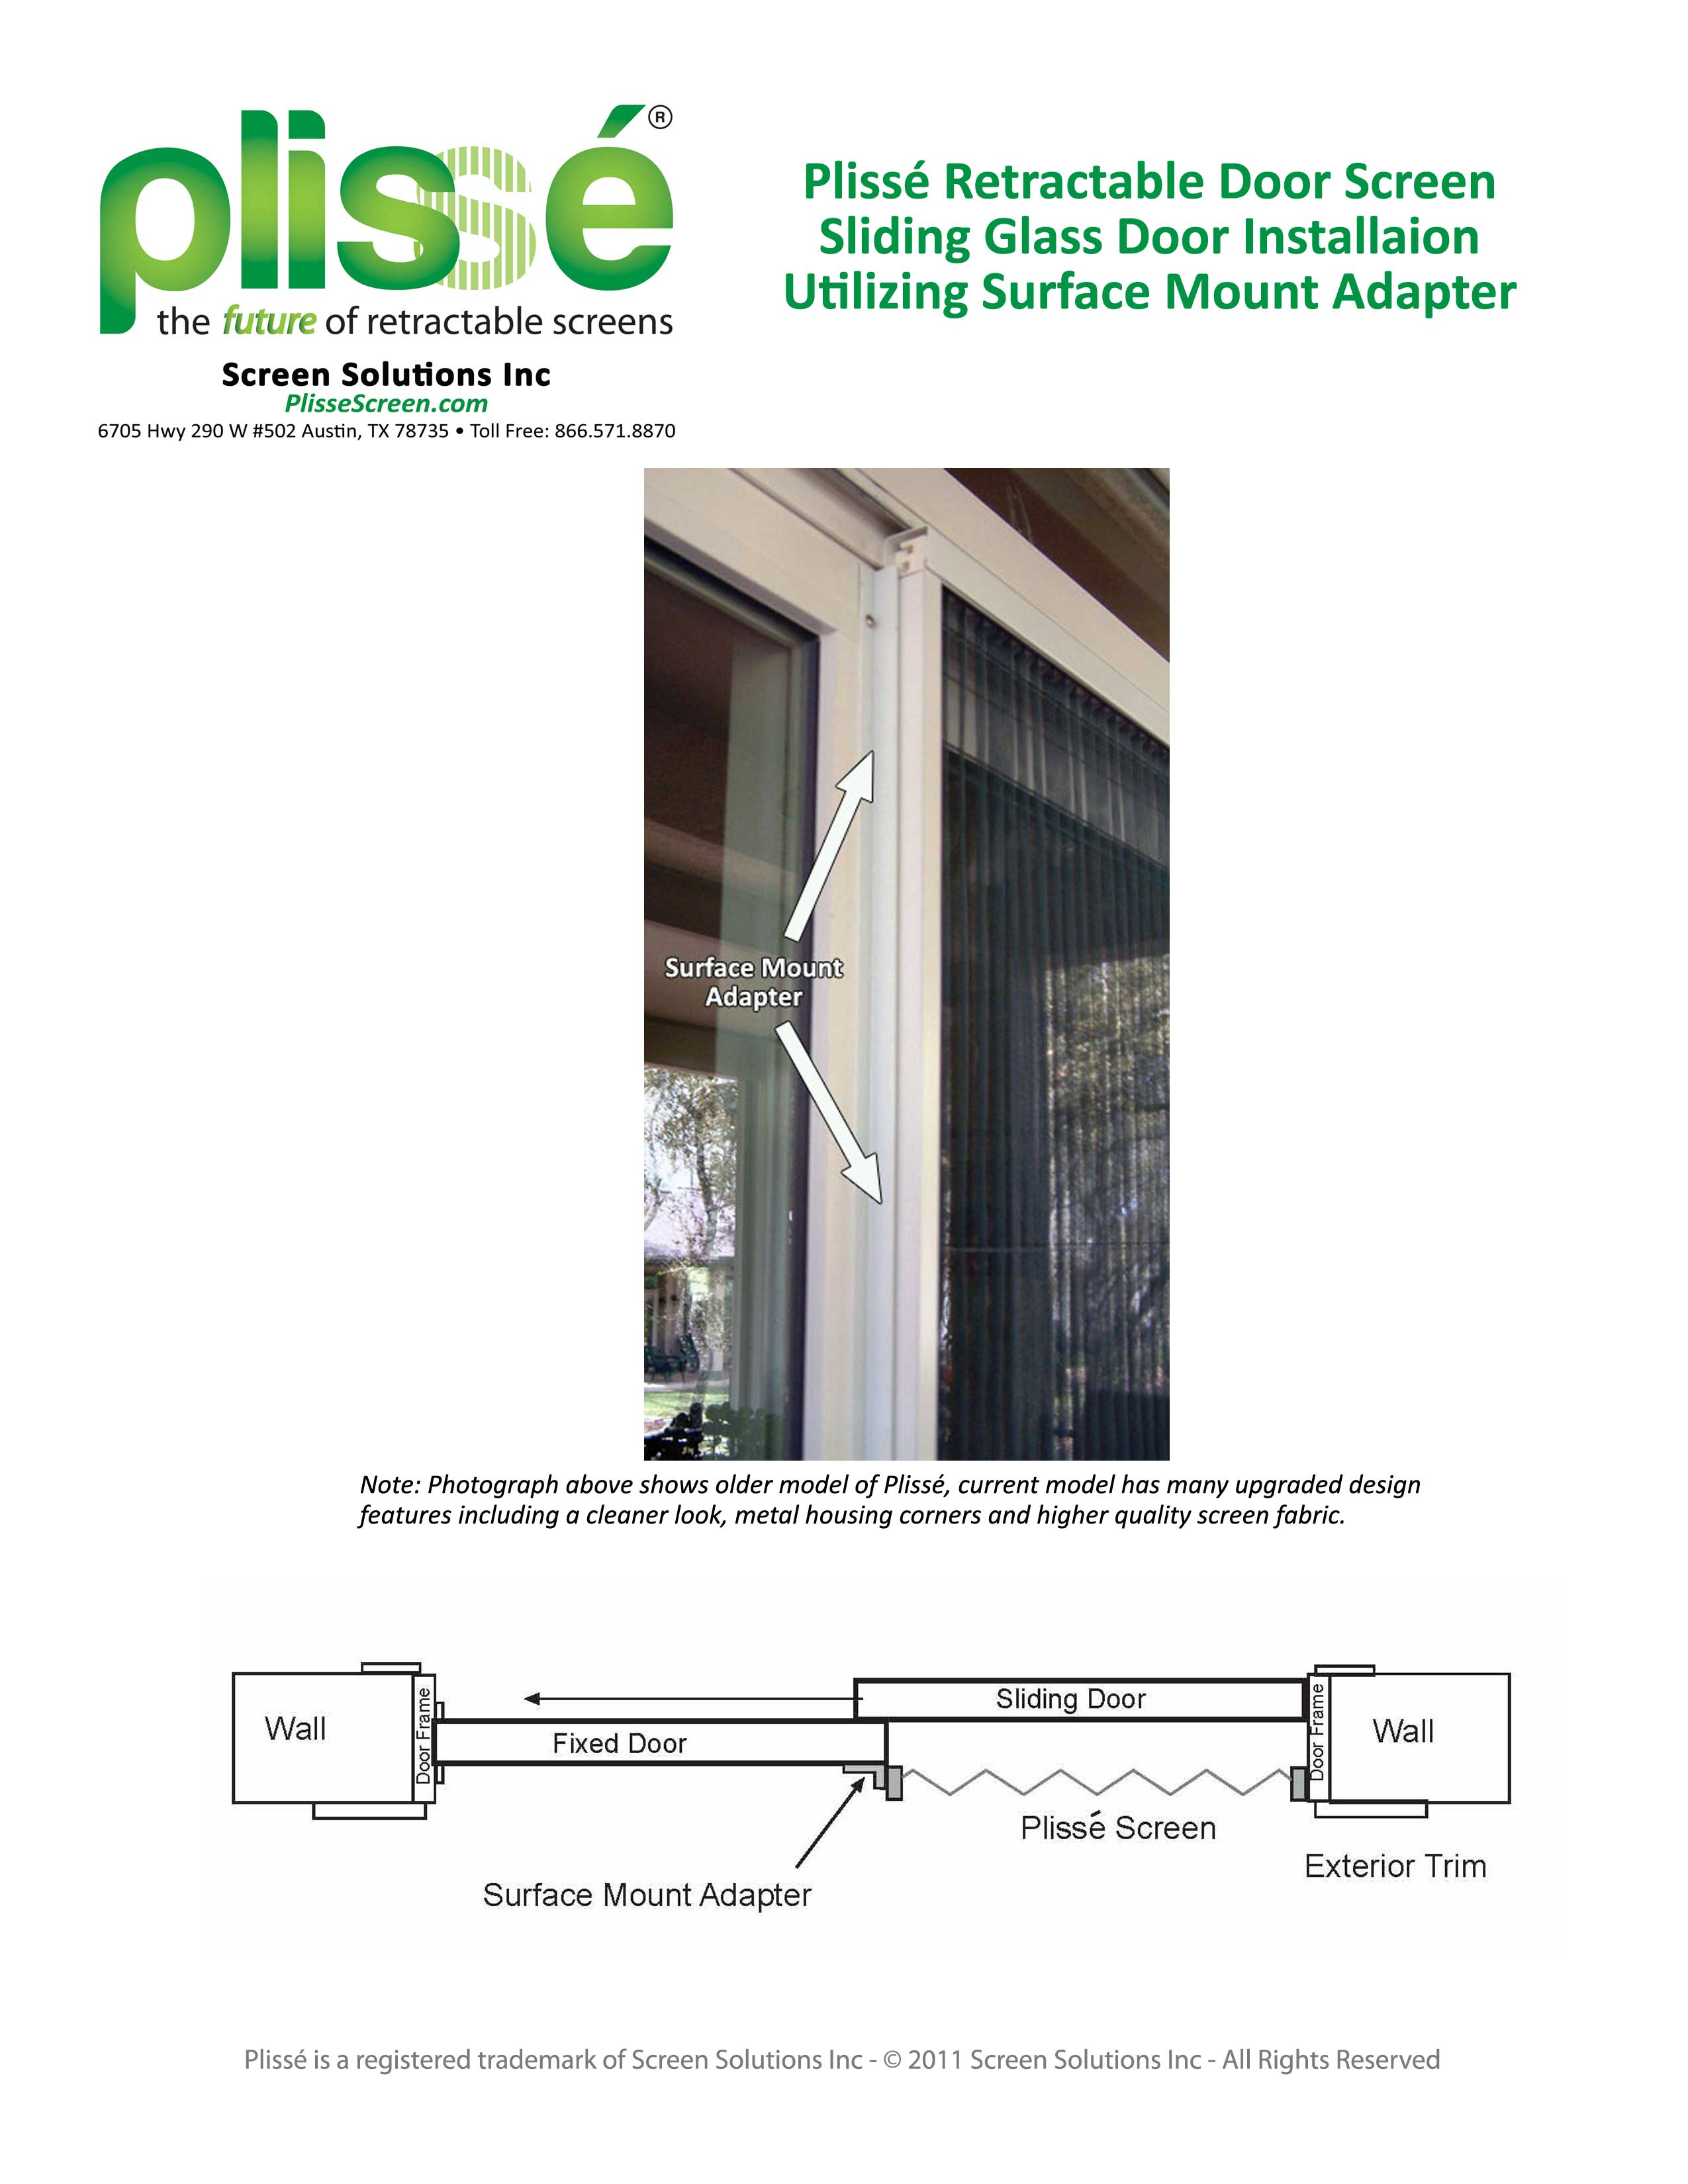 Plisse retractable screens for sliding glass doors suface mount photograph and diagram plisse retractable door screen for sliding glass doorways planetlyrics Gallery